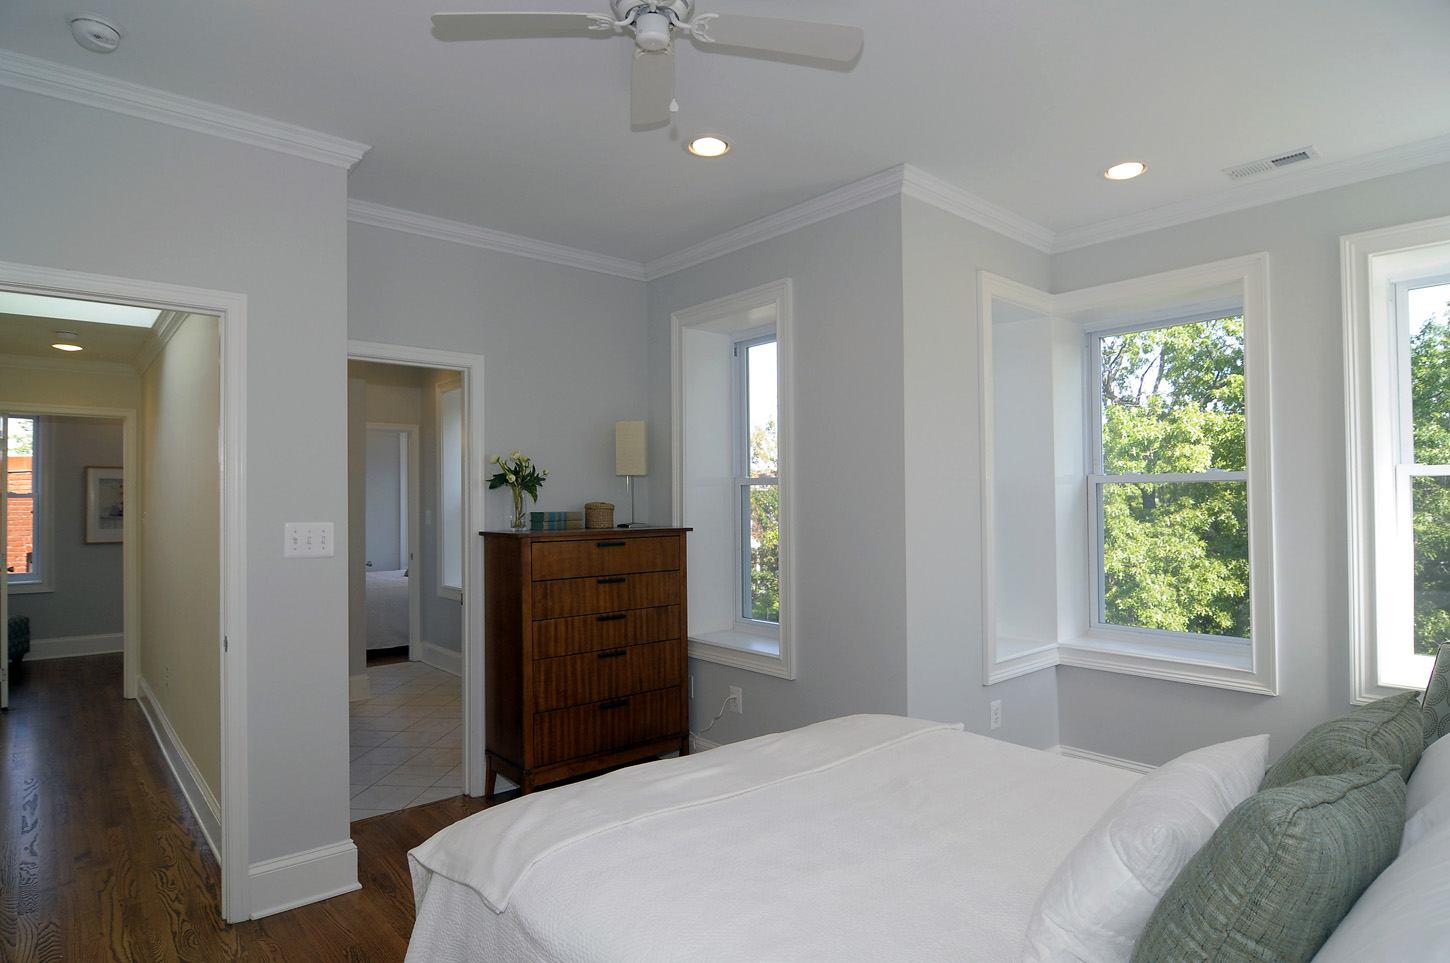 Benjamin moore gray the great search life on hill st - Light grey paint color for bedroom ...